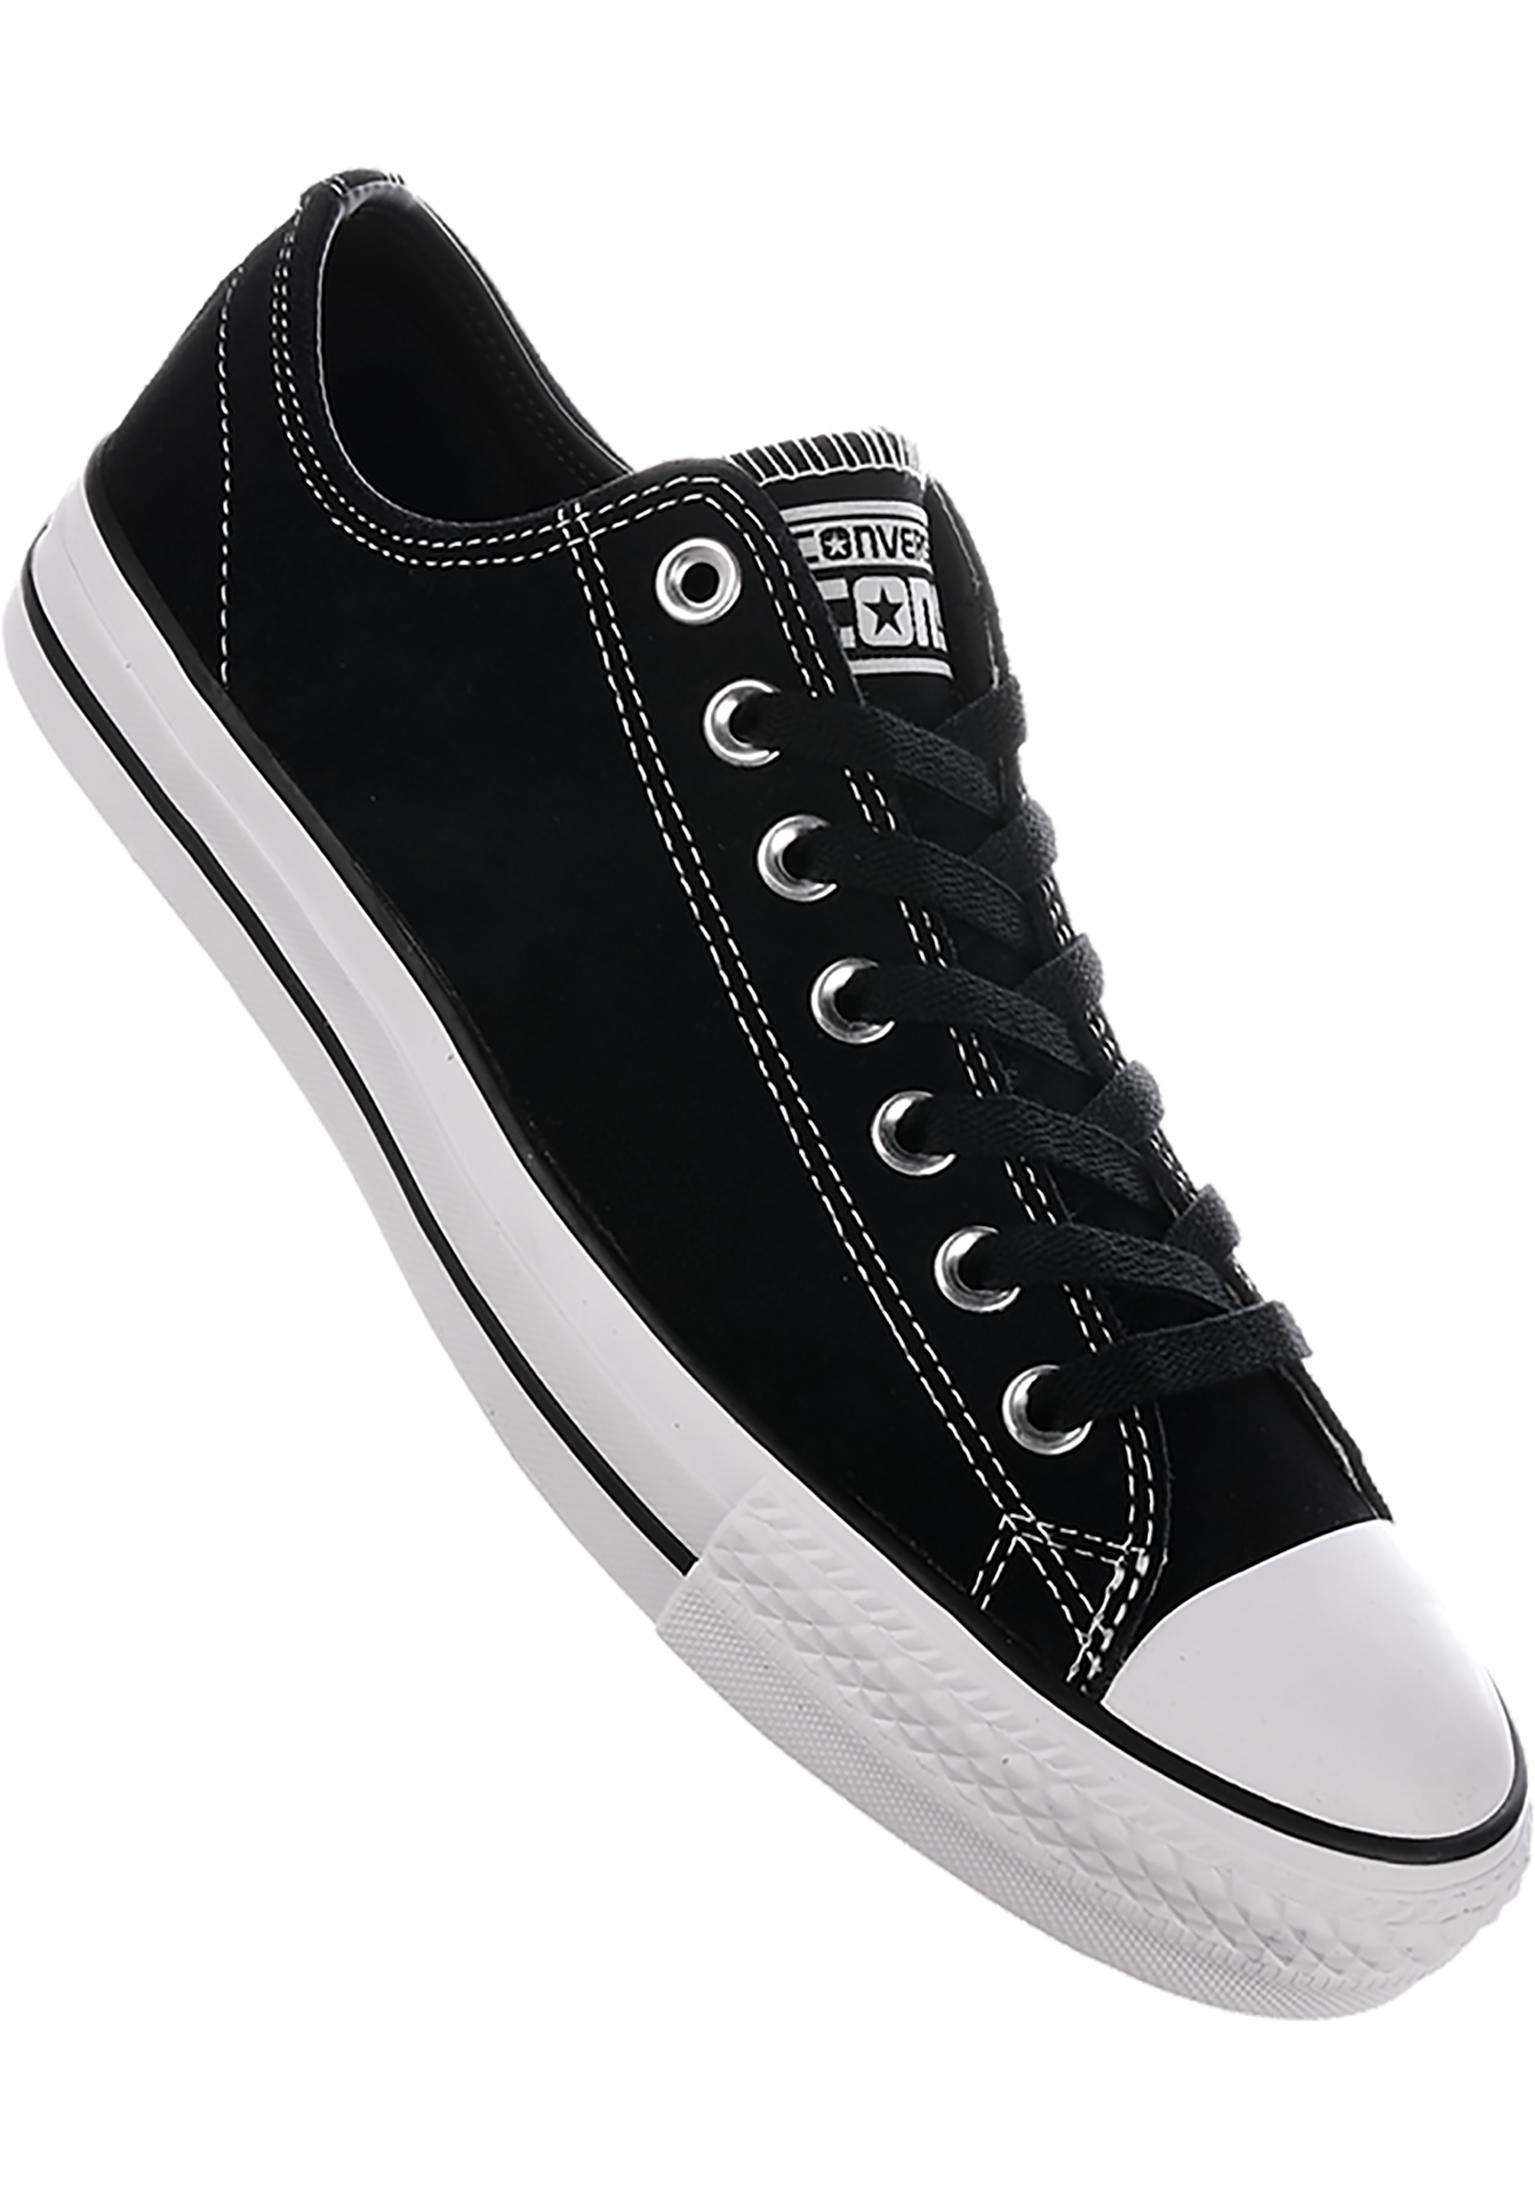 09a0927e13aa CTAS Pro Suede Ox Converse CONS All Shoes in black-black-white for Men